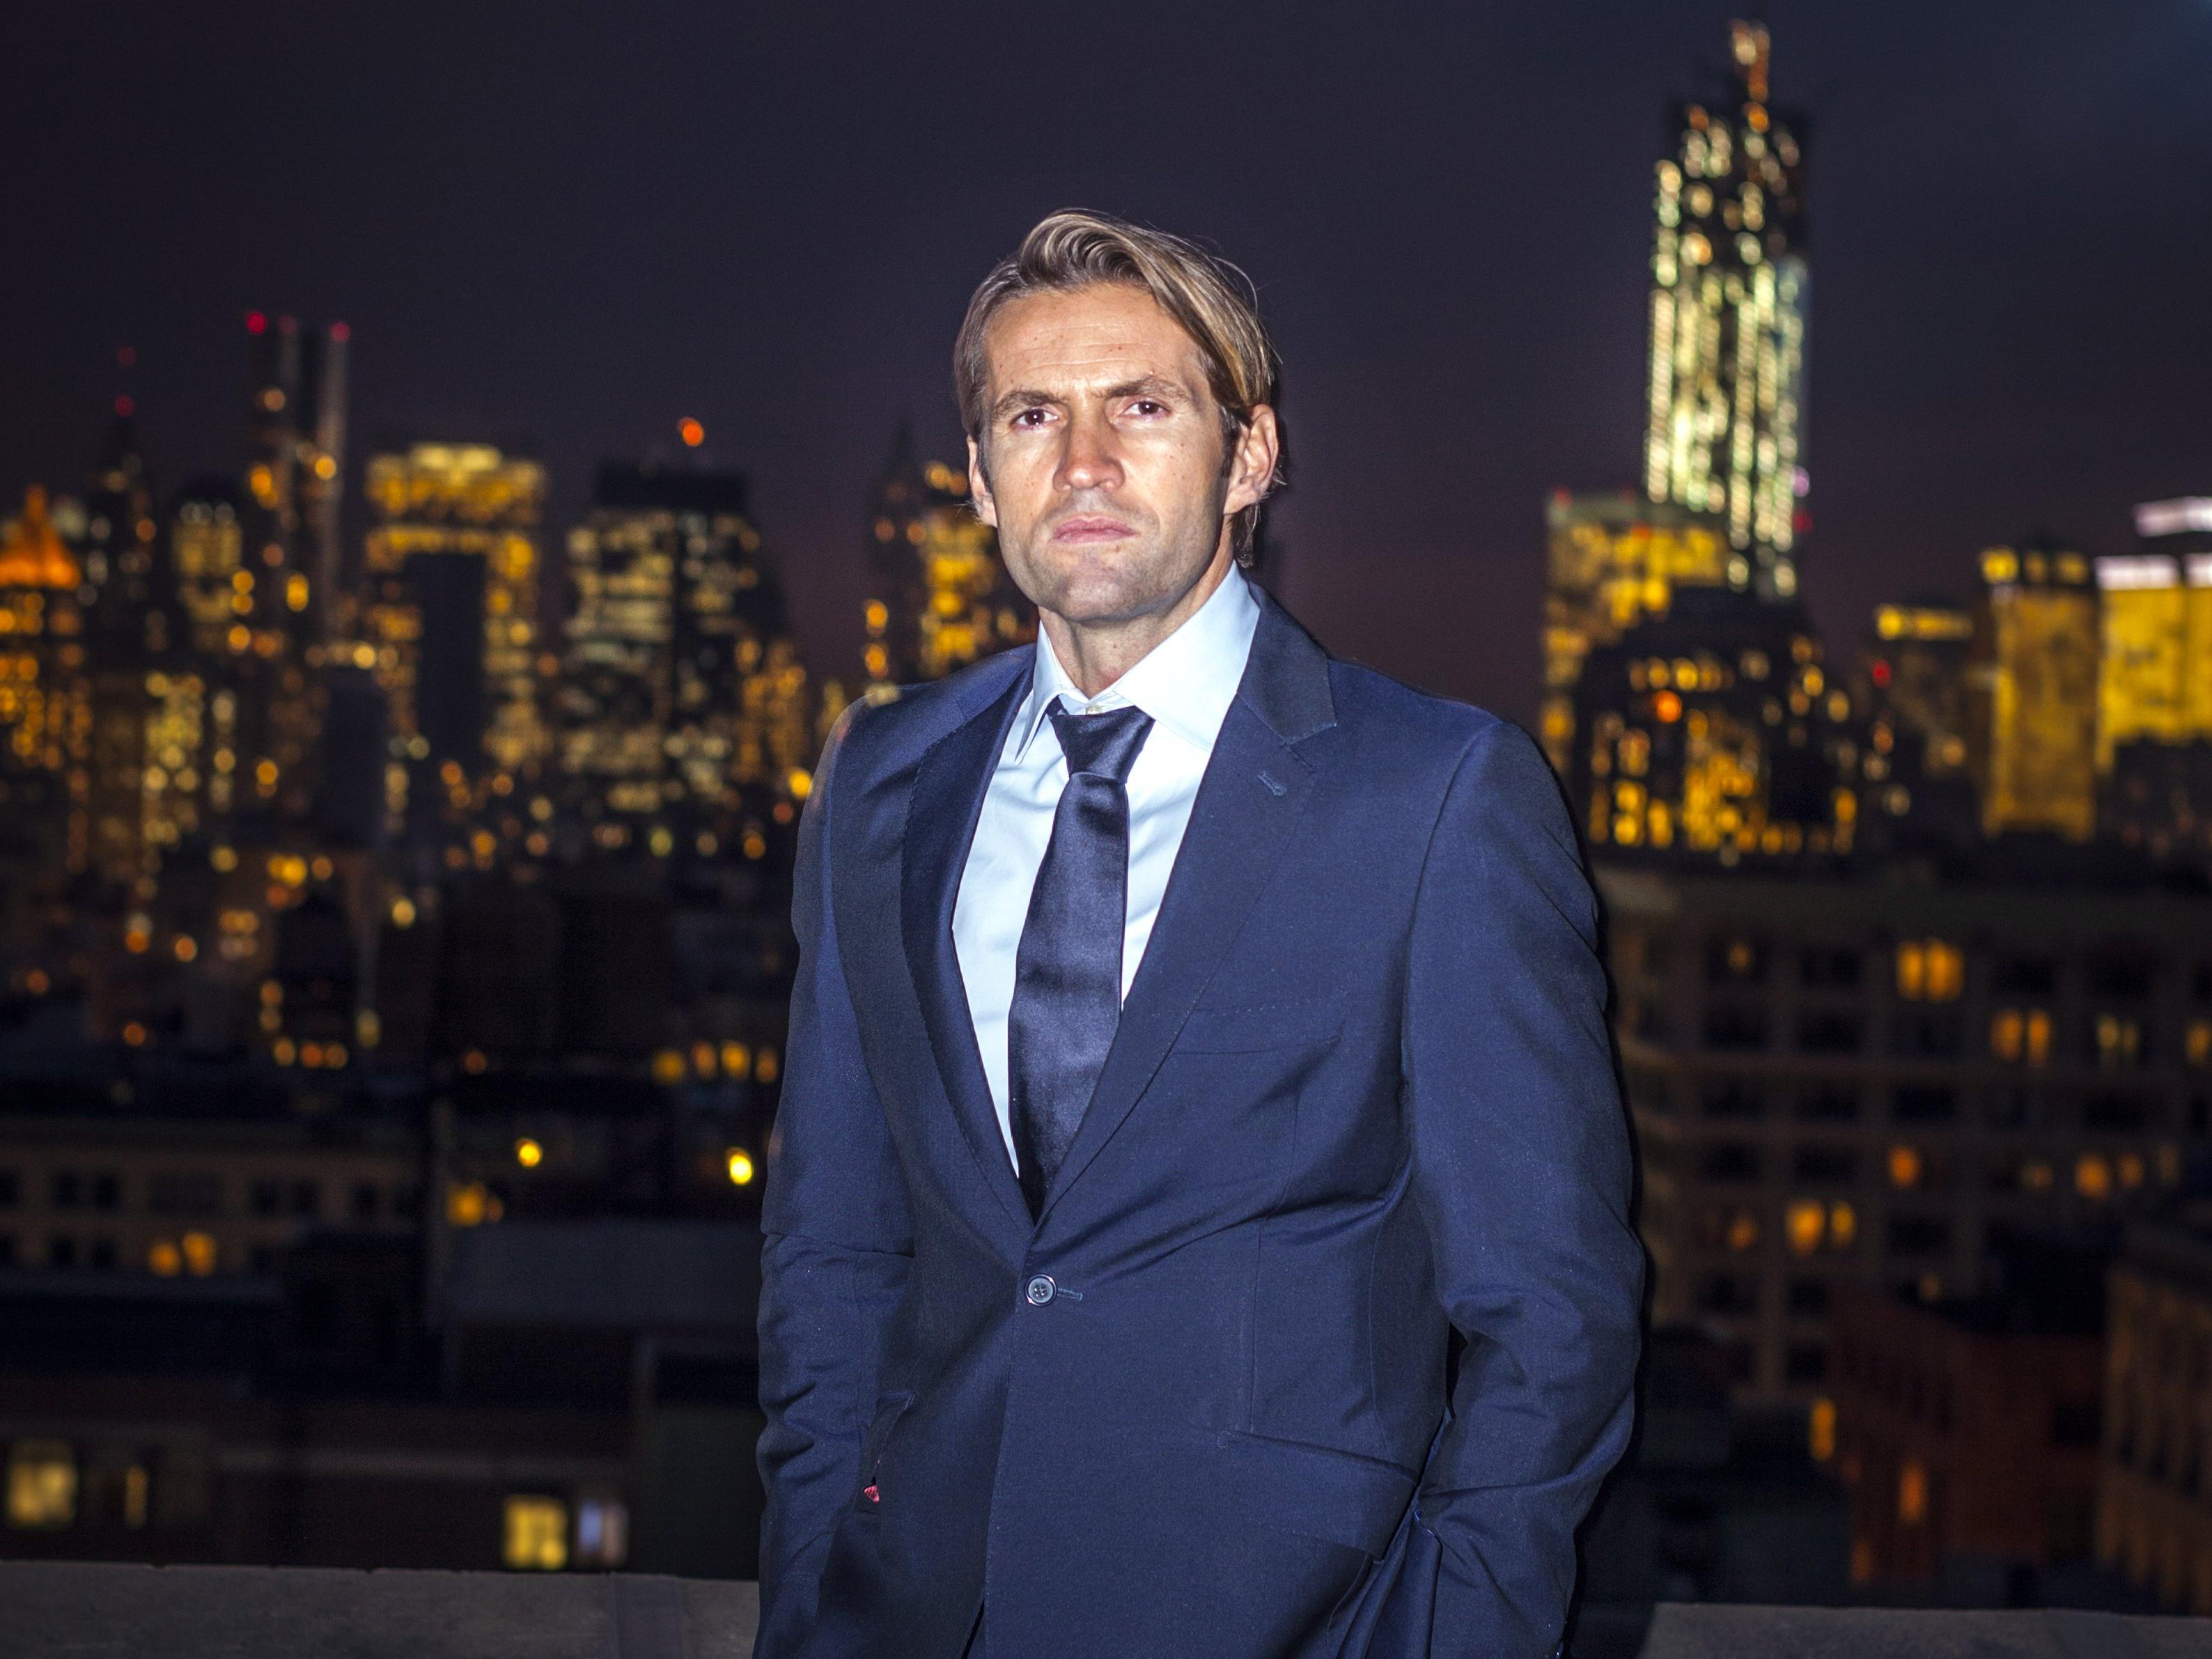 AOL's consumer brands boss Jimmy Maymann talks to us about M&A, the Gawker trial, and virtual reality ambitions